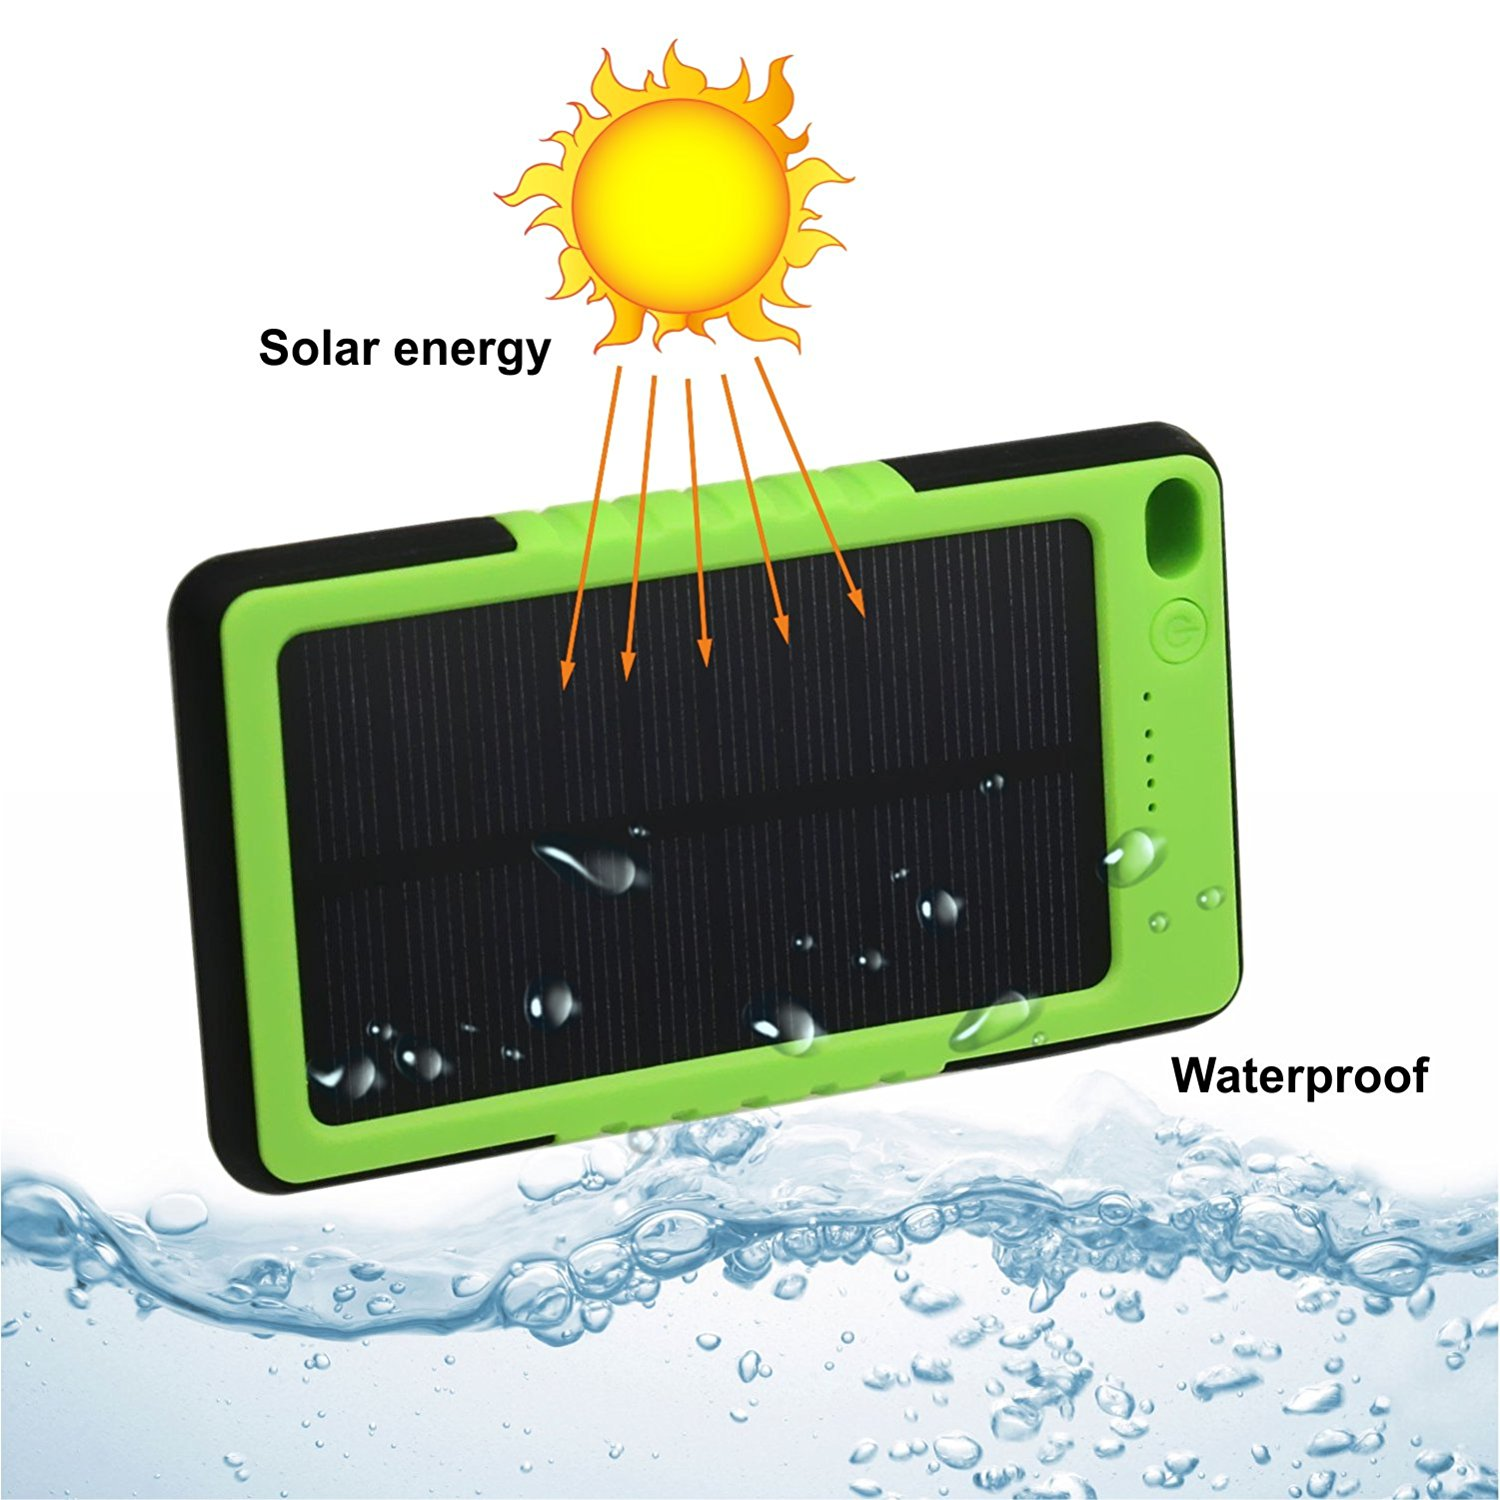 Solar Portable Charger Waterproof 8000mah LED External Battery Charger Power Bank For Cell Phone, iPhone, Samsung, Android phones, Windows phones, GoPro Camera, GPS, (Green)